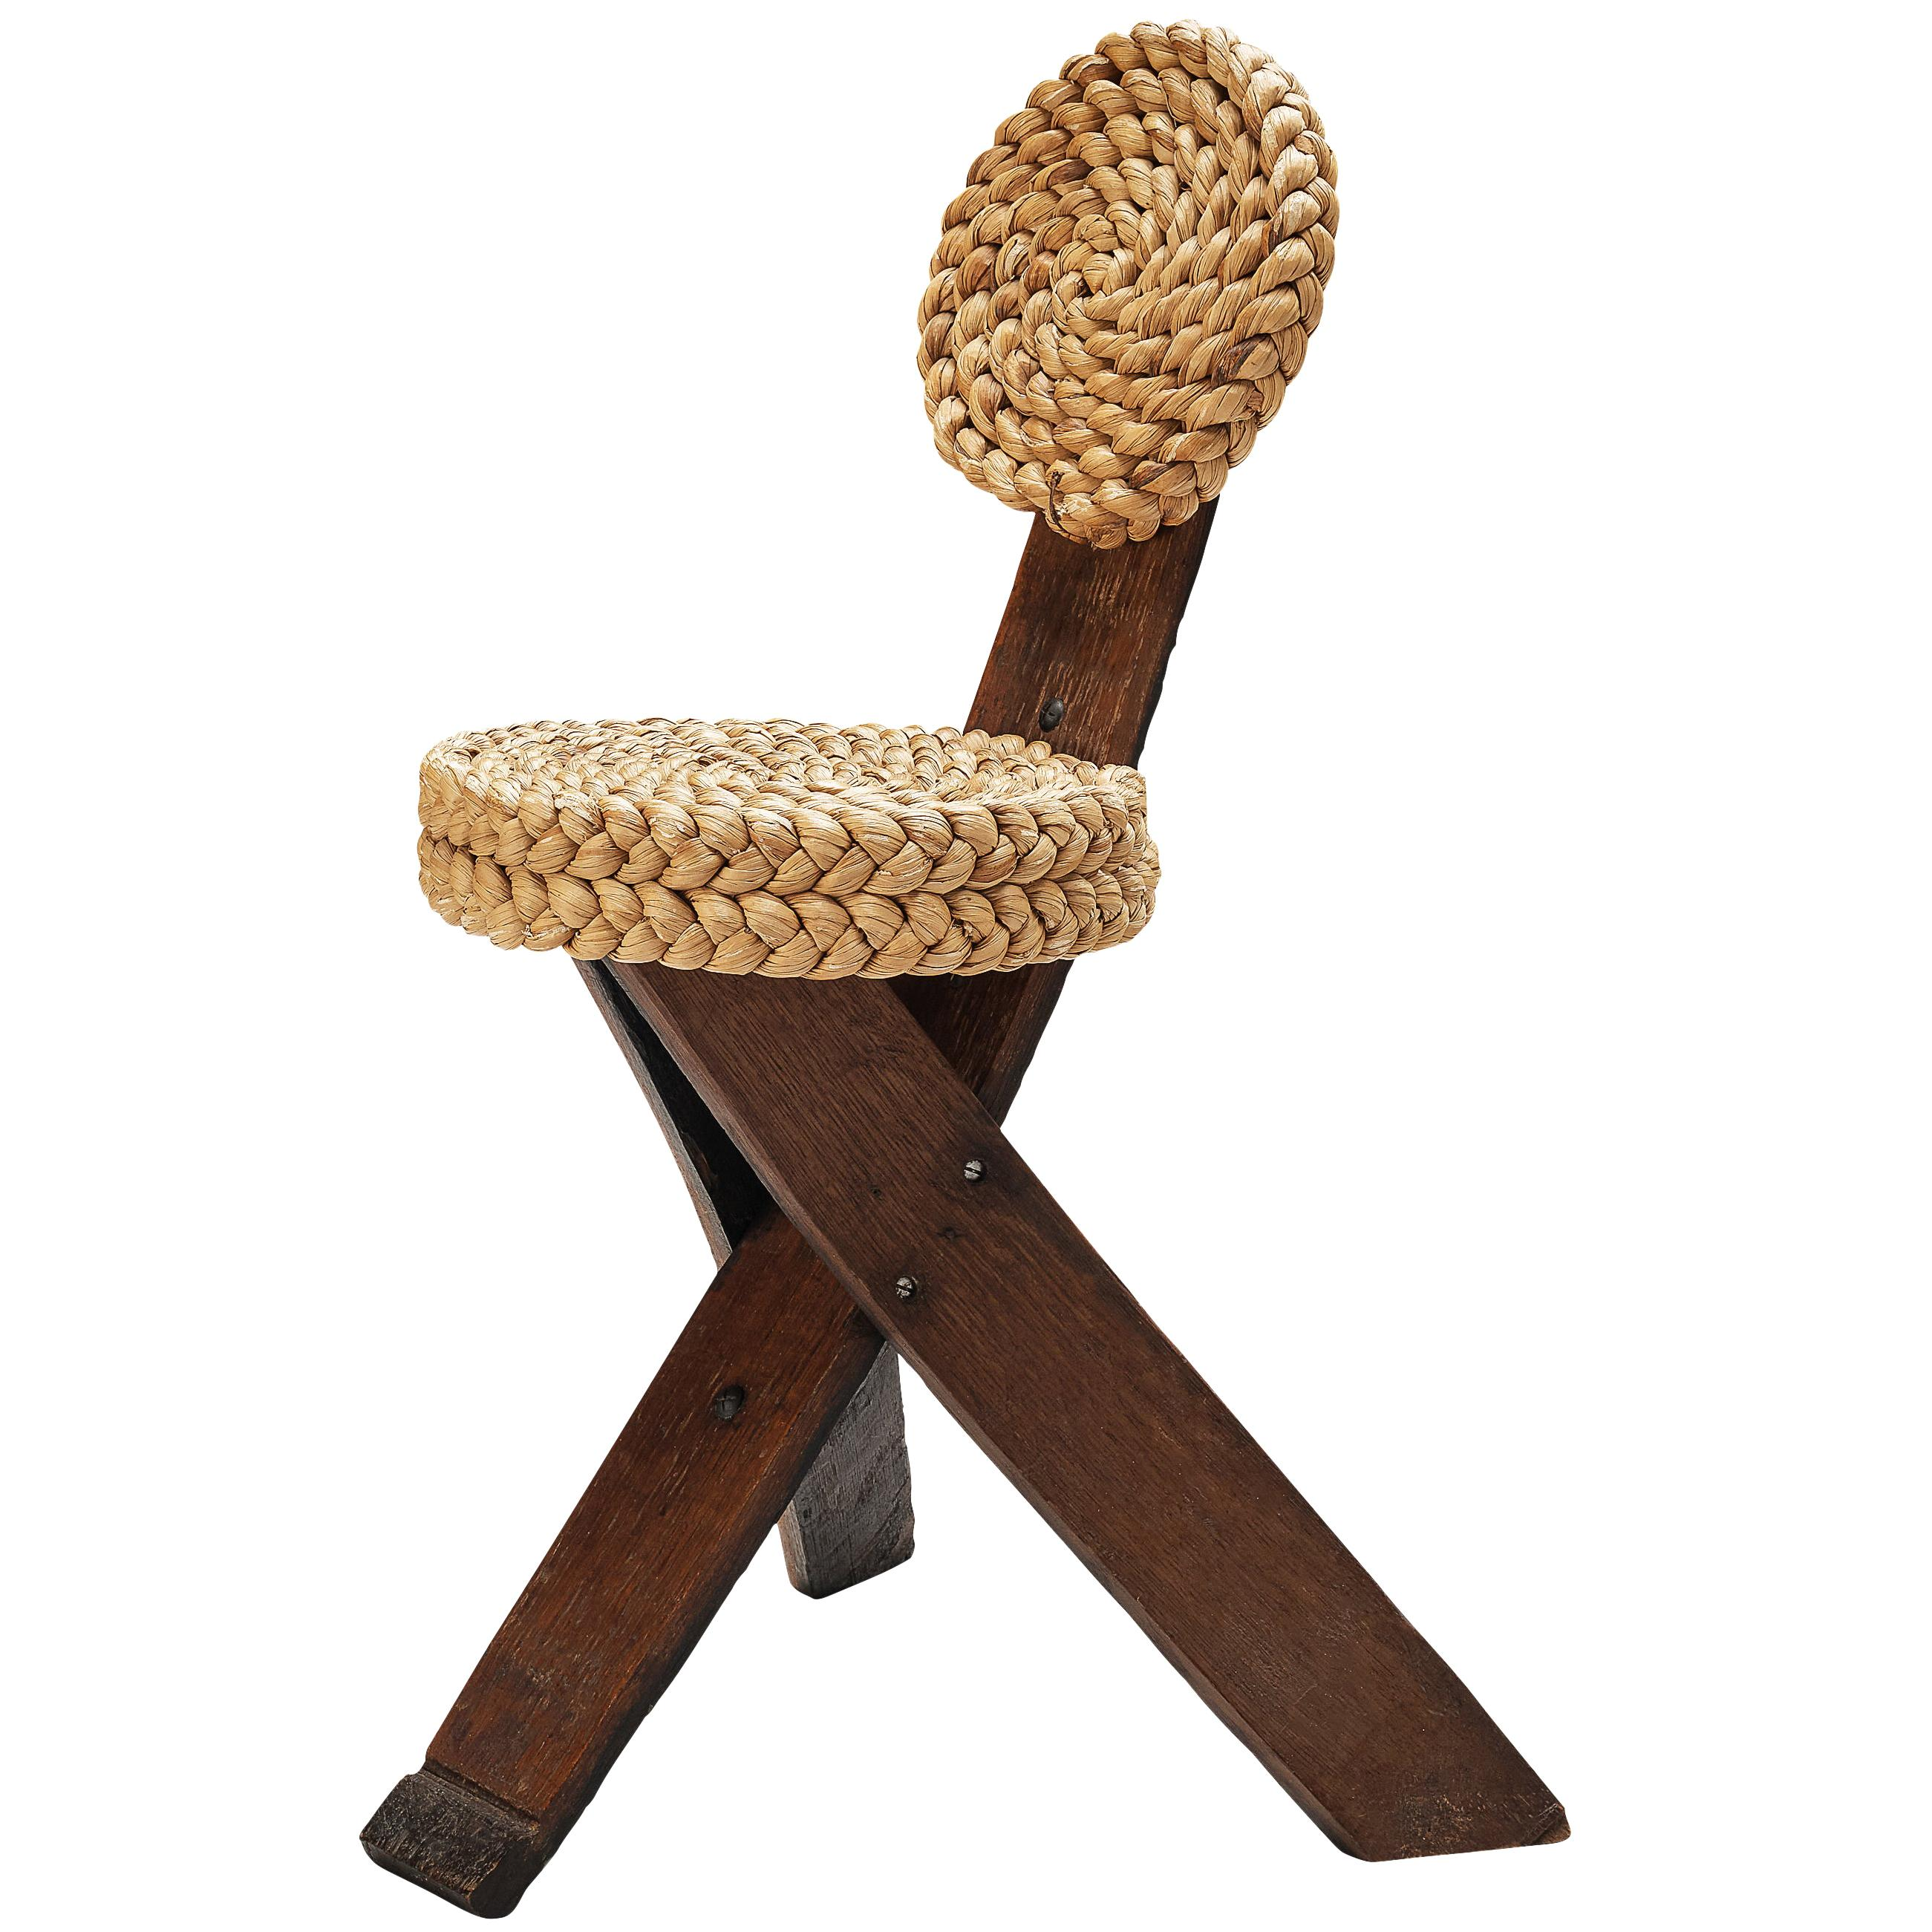 Adrien Audoux and Frida Minet Side Chair in Oak with Braided Straw